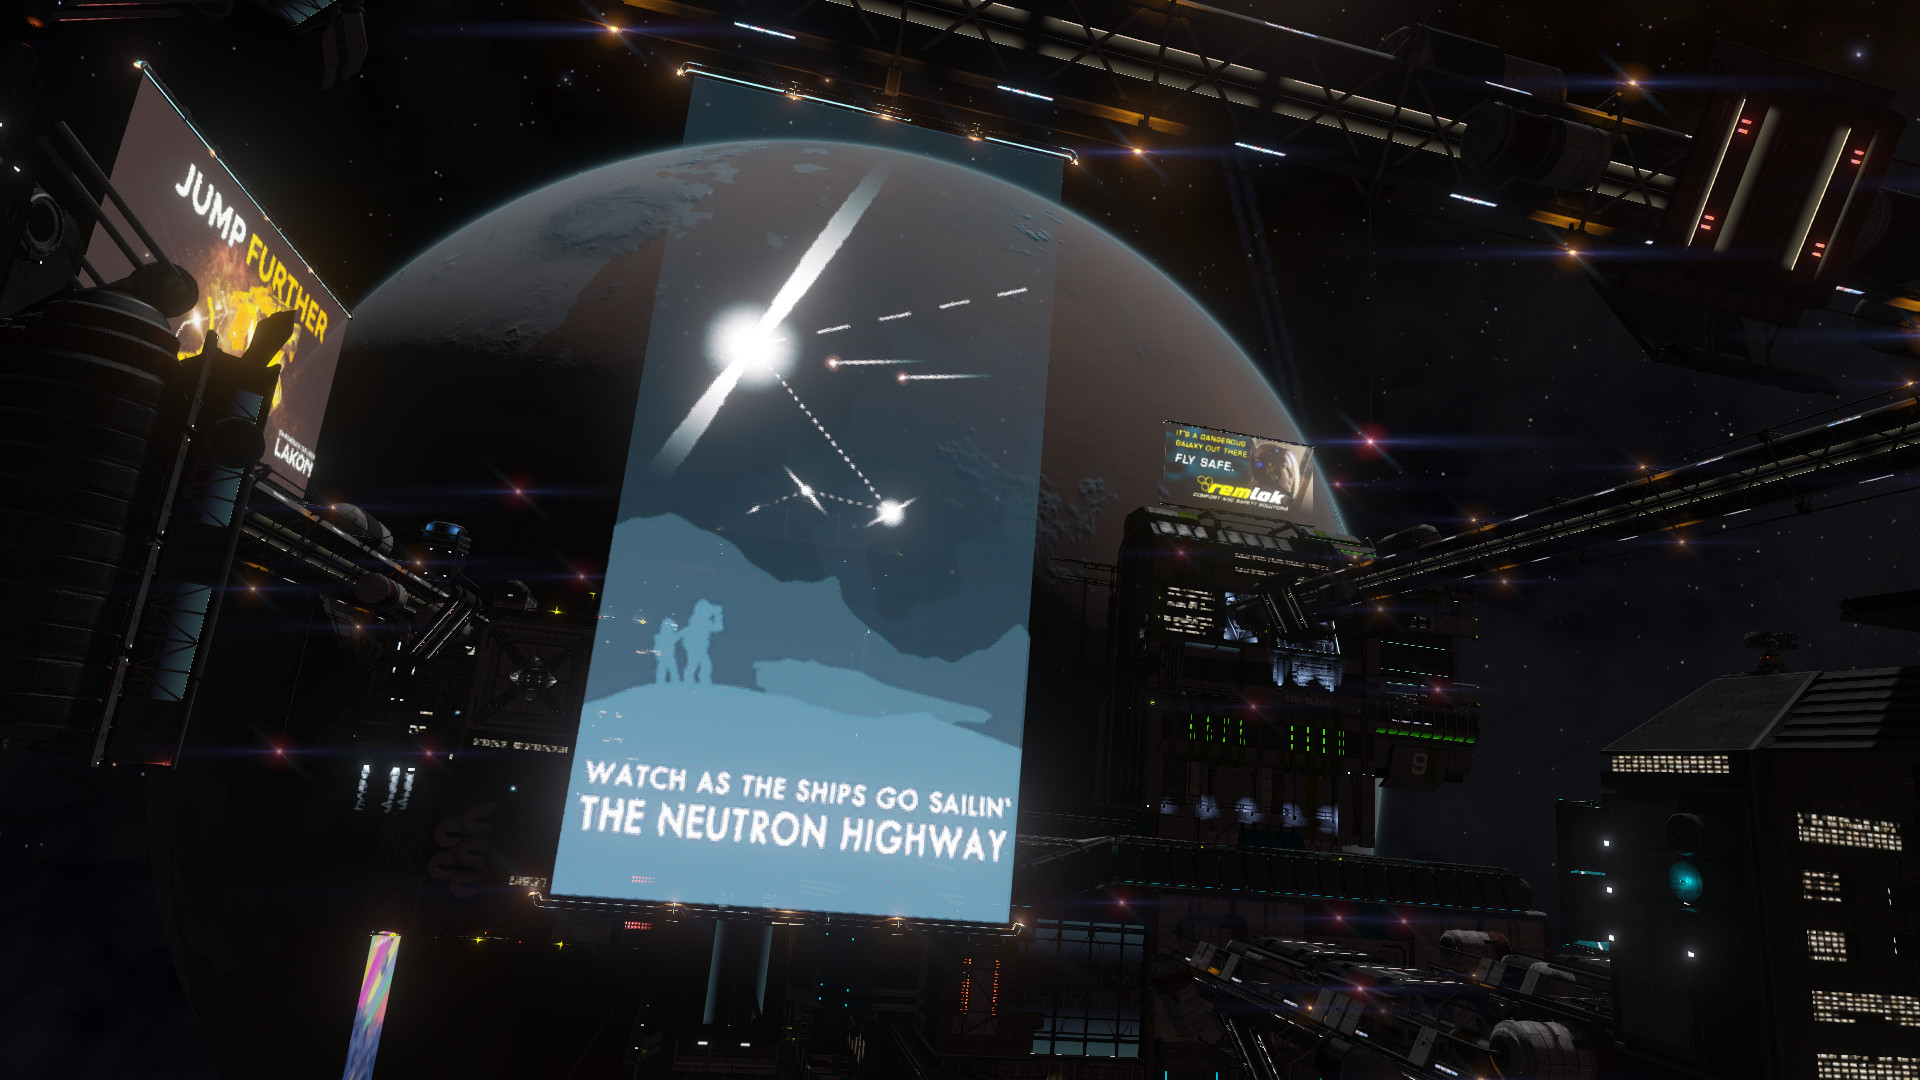 Mathew maddison neutron highway